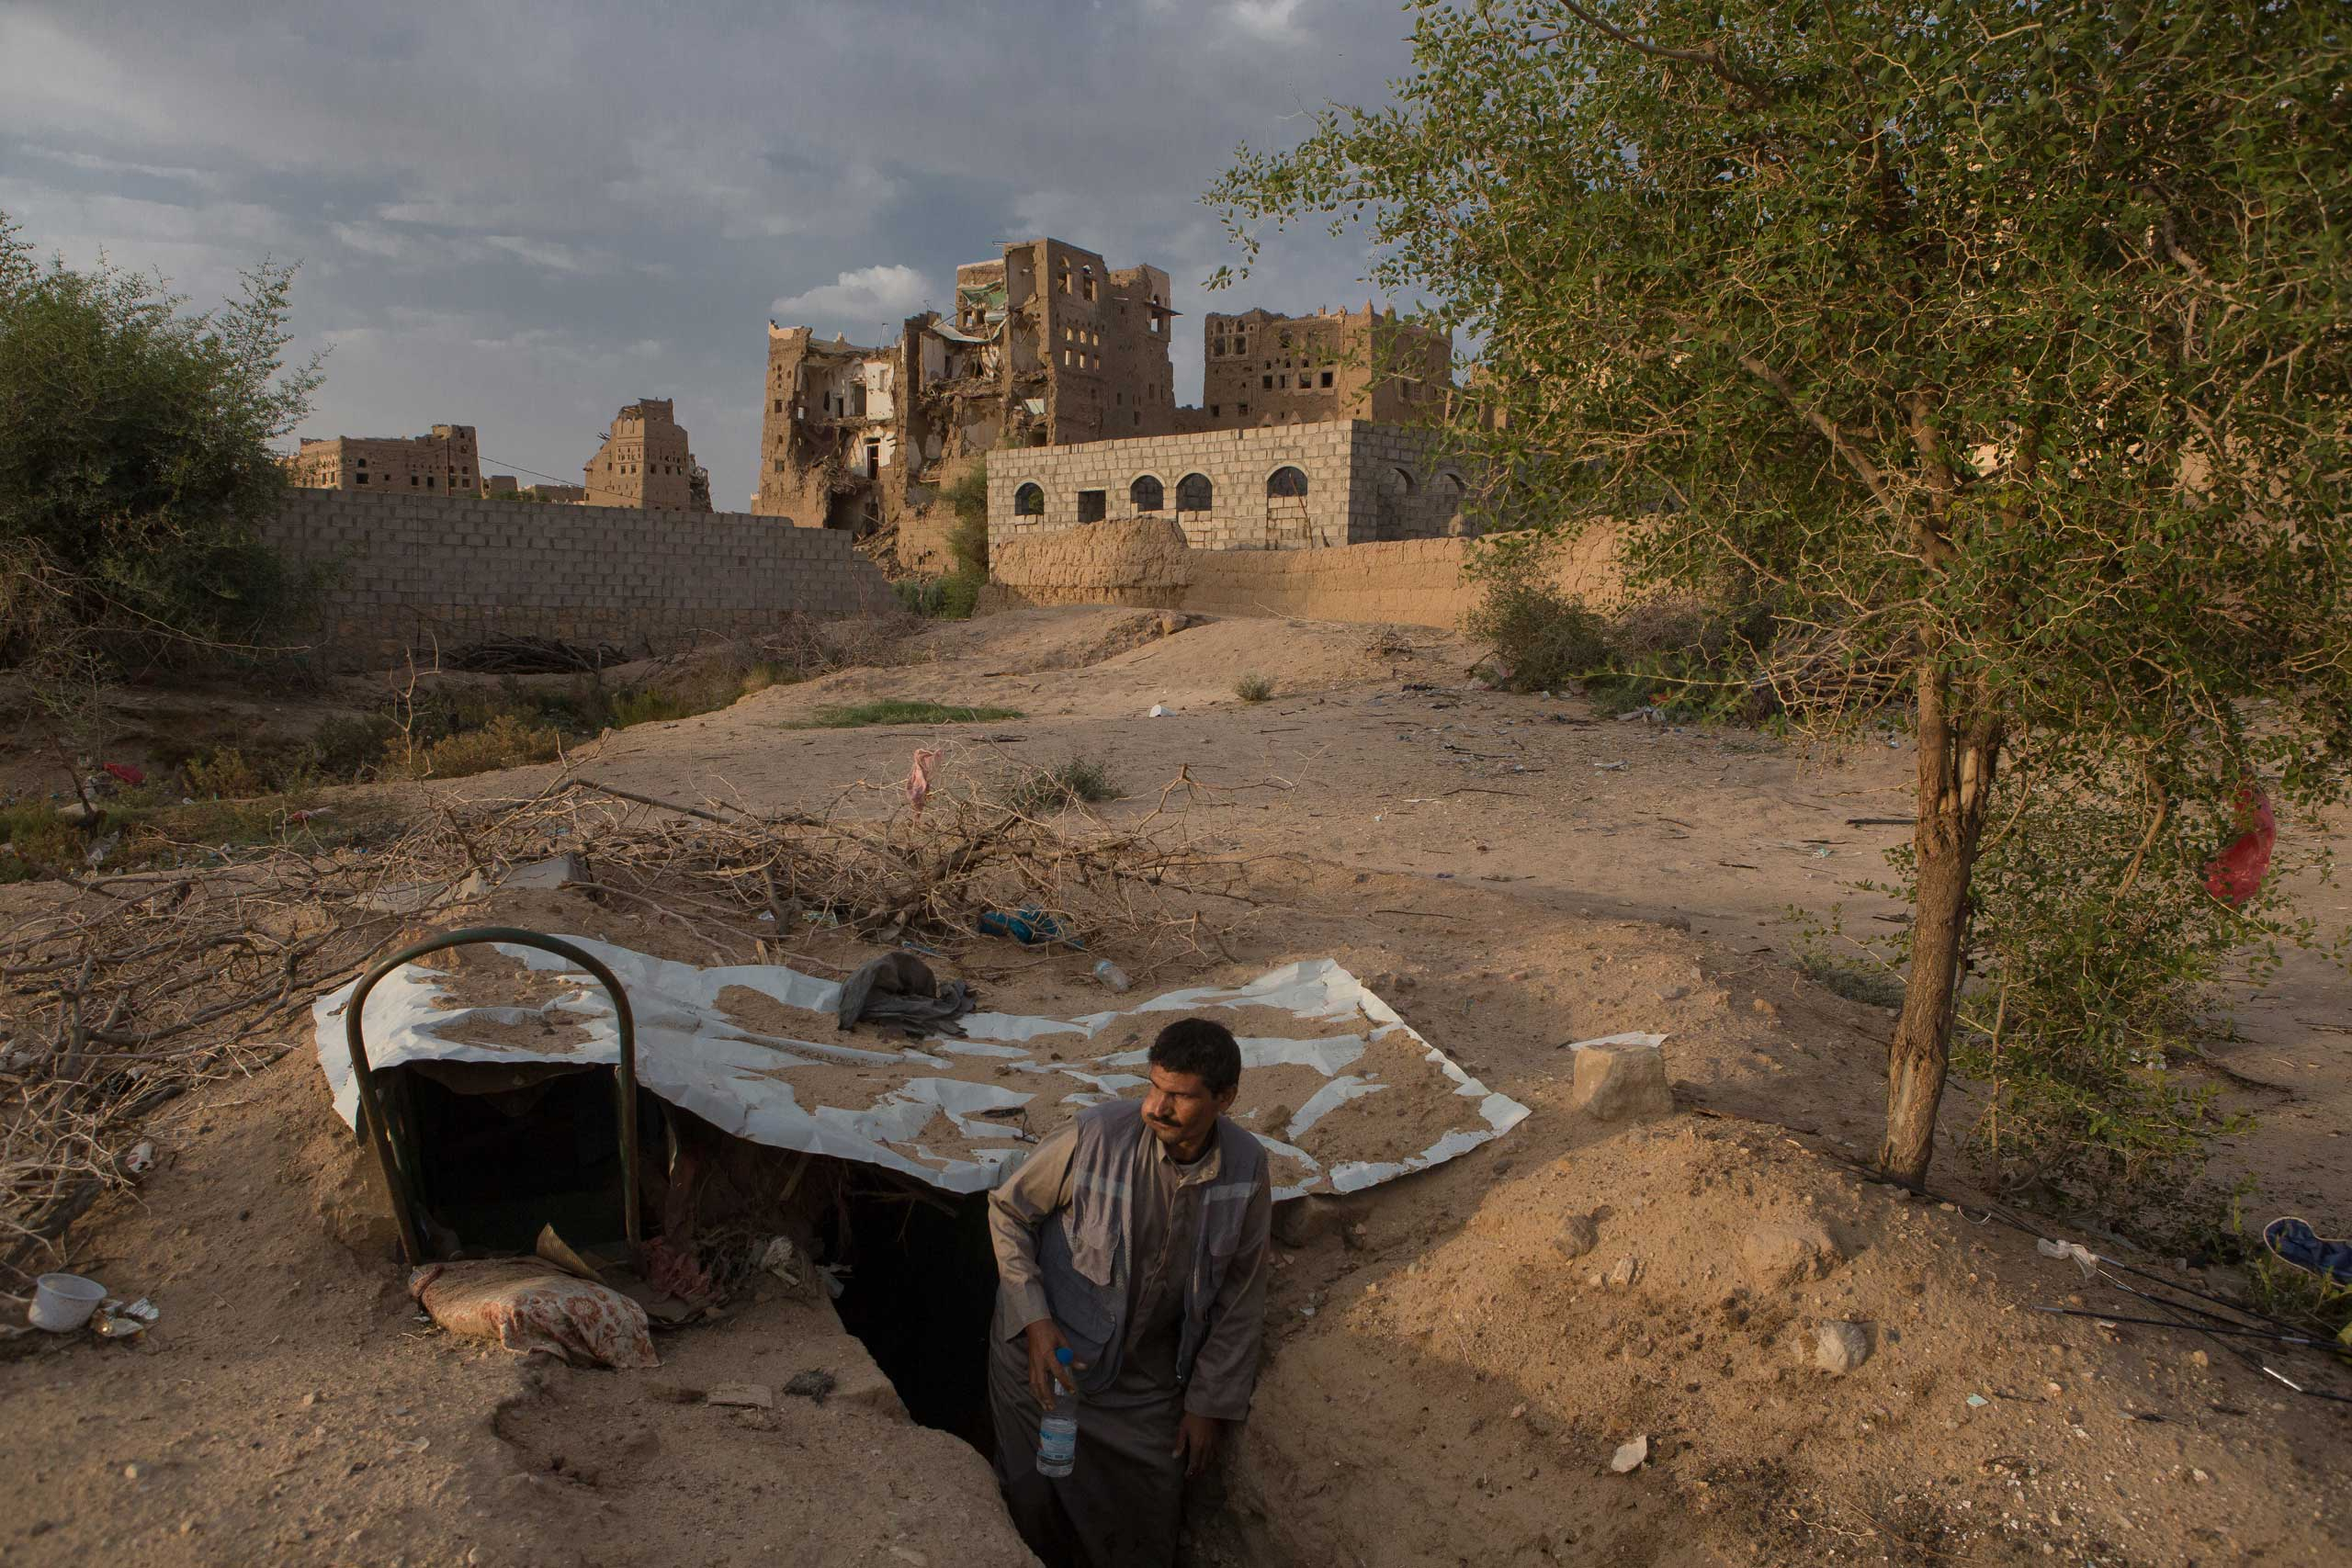 A man stands in a                               shelter dug in the                               ground in Rahban,                               on the outskirts                               of Saada City, the Houthi stronghold where the rebel movement was founded  in northern Yemen, Aug. 26, 2015.